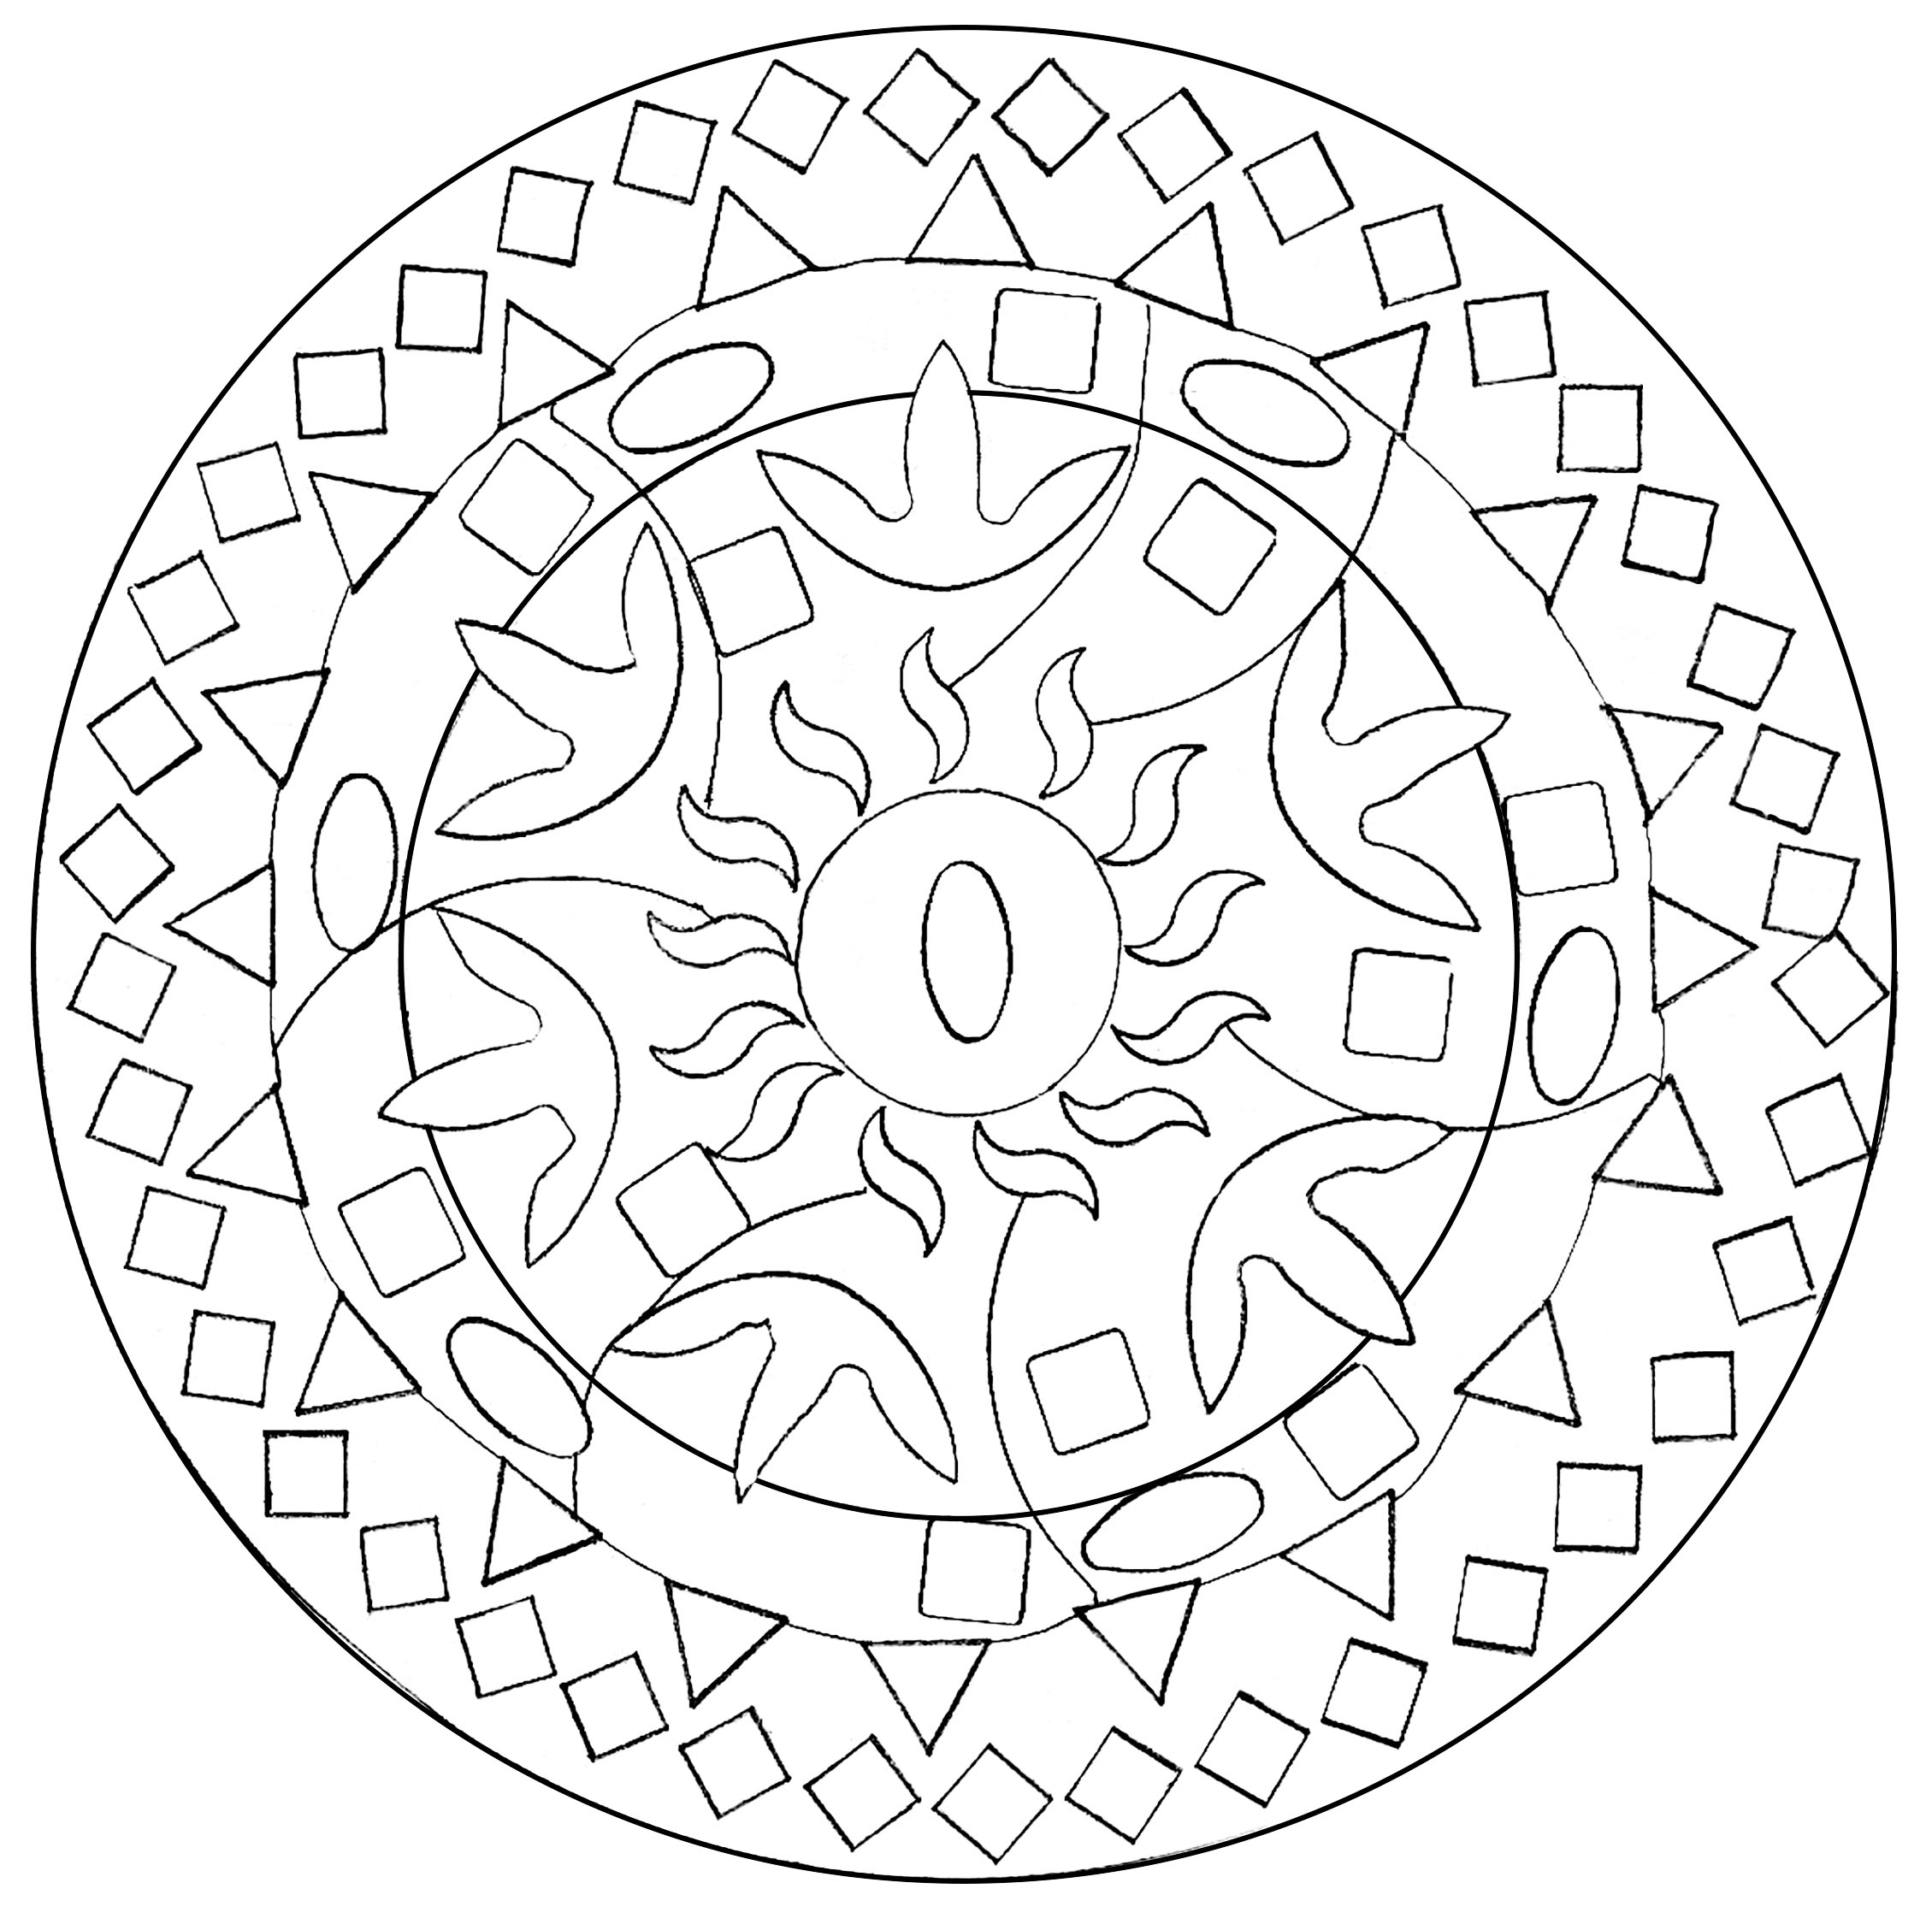 Easy abstract mandala - M&alas Adult Coloring Pages